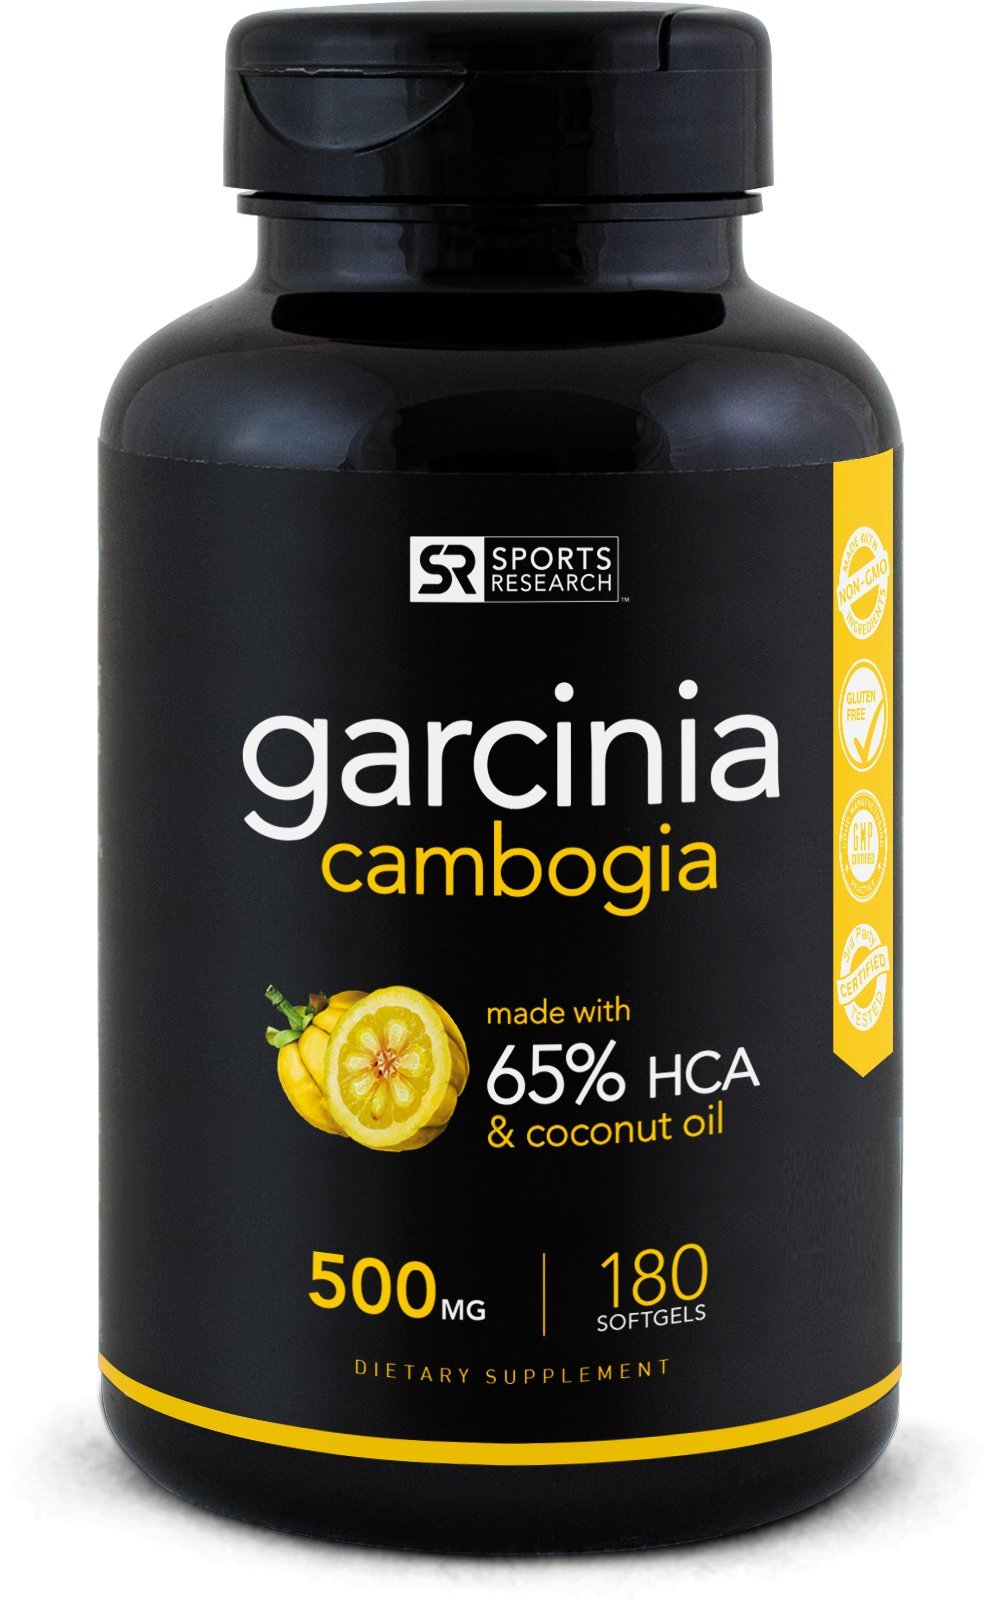 Pure Garcinia Cambogia Extract with 65% HCA; Made In USA; Infused with Coconut Oil for better Absorption; 180 liquid softgels. by Sports Research